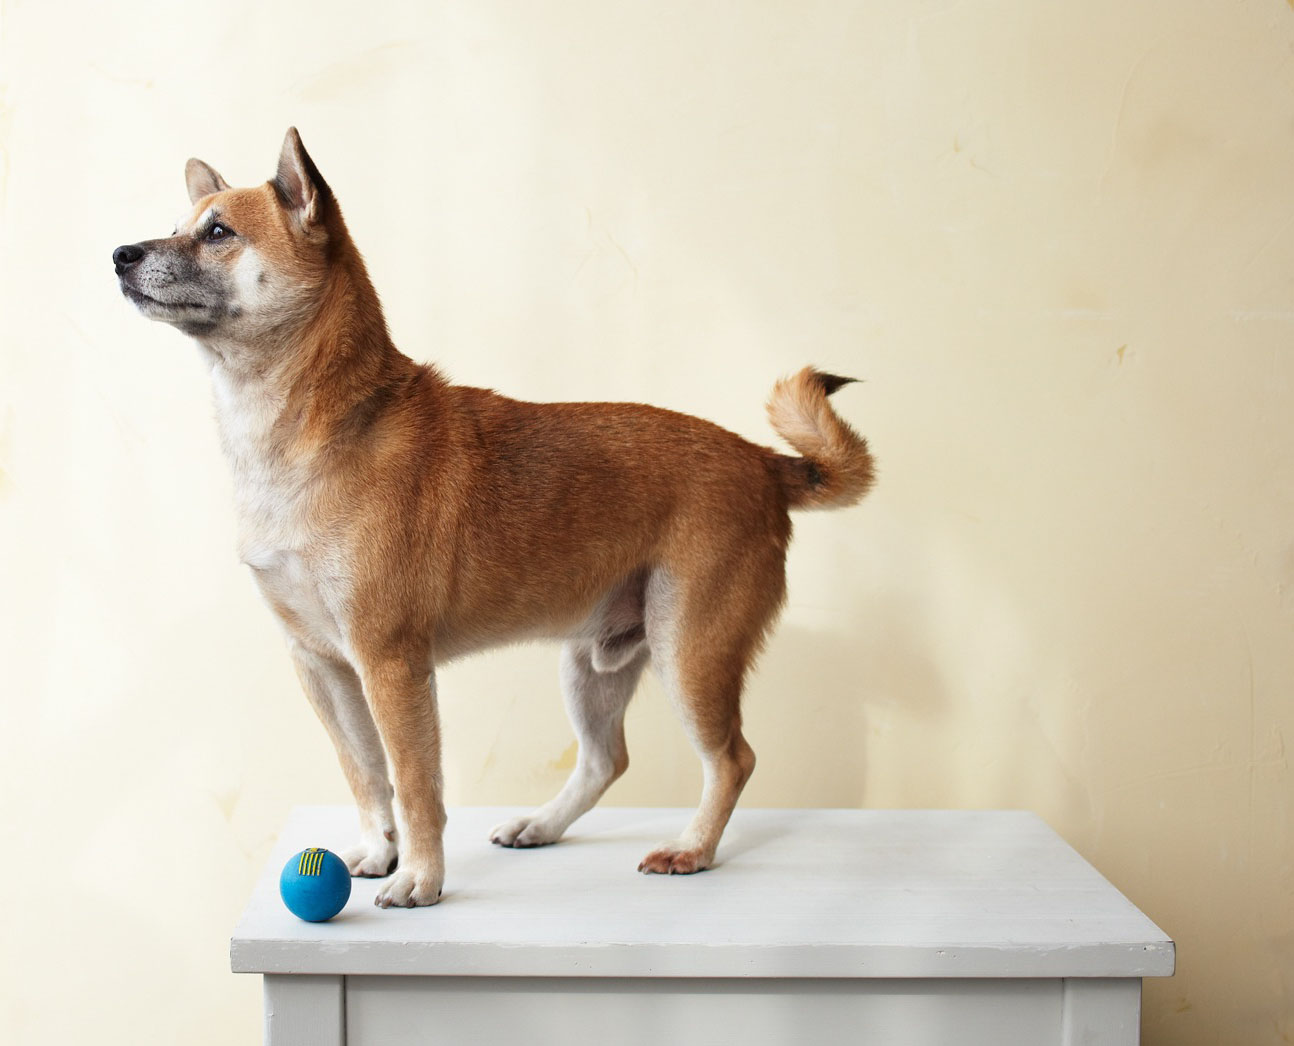 Shiba Inu on a veterinarian's table